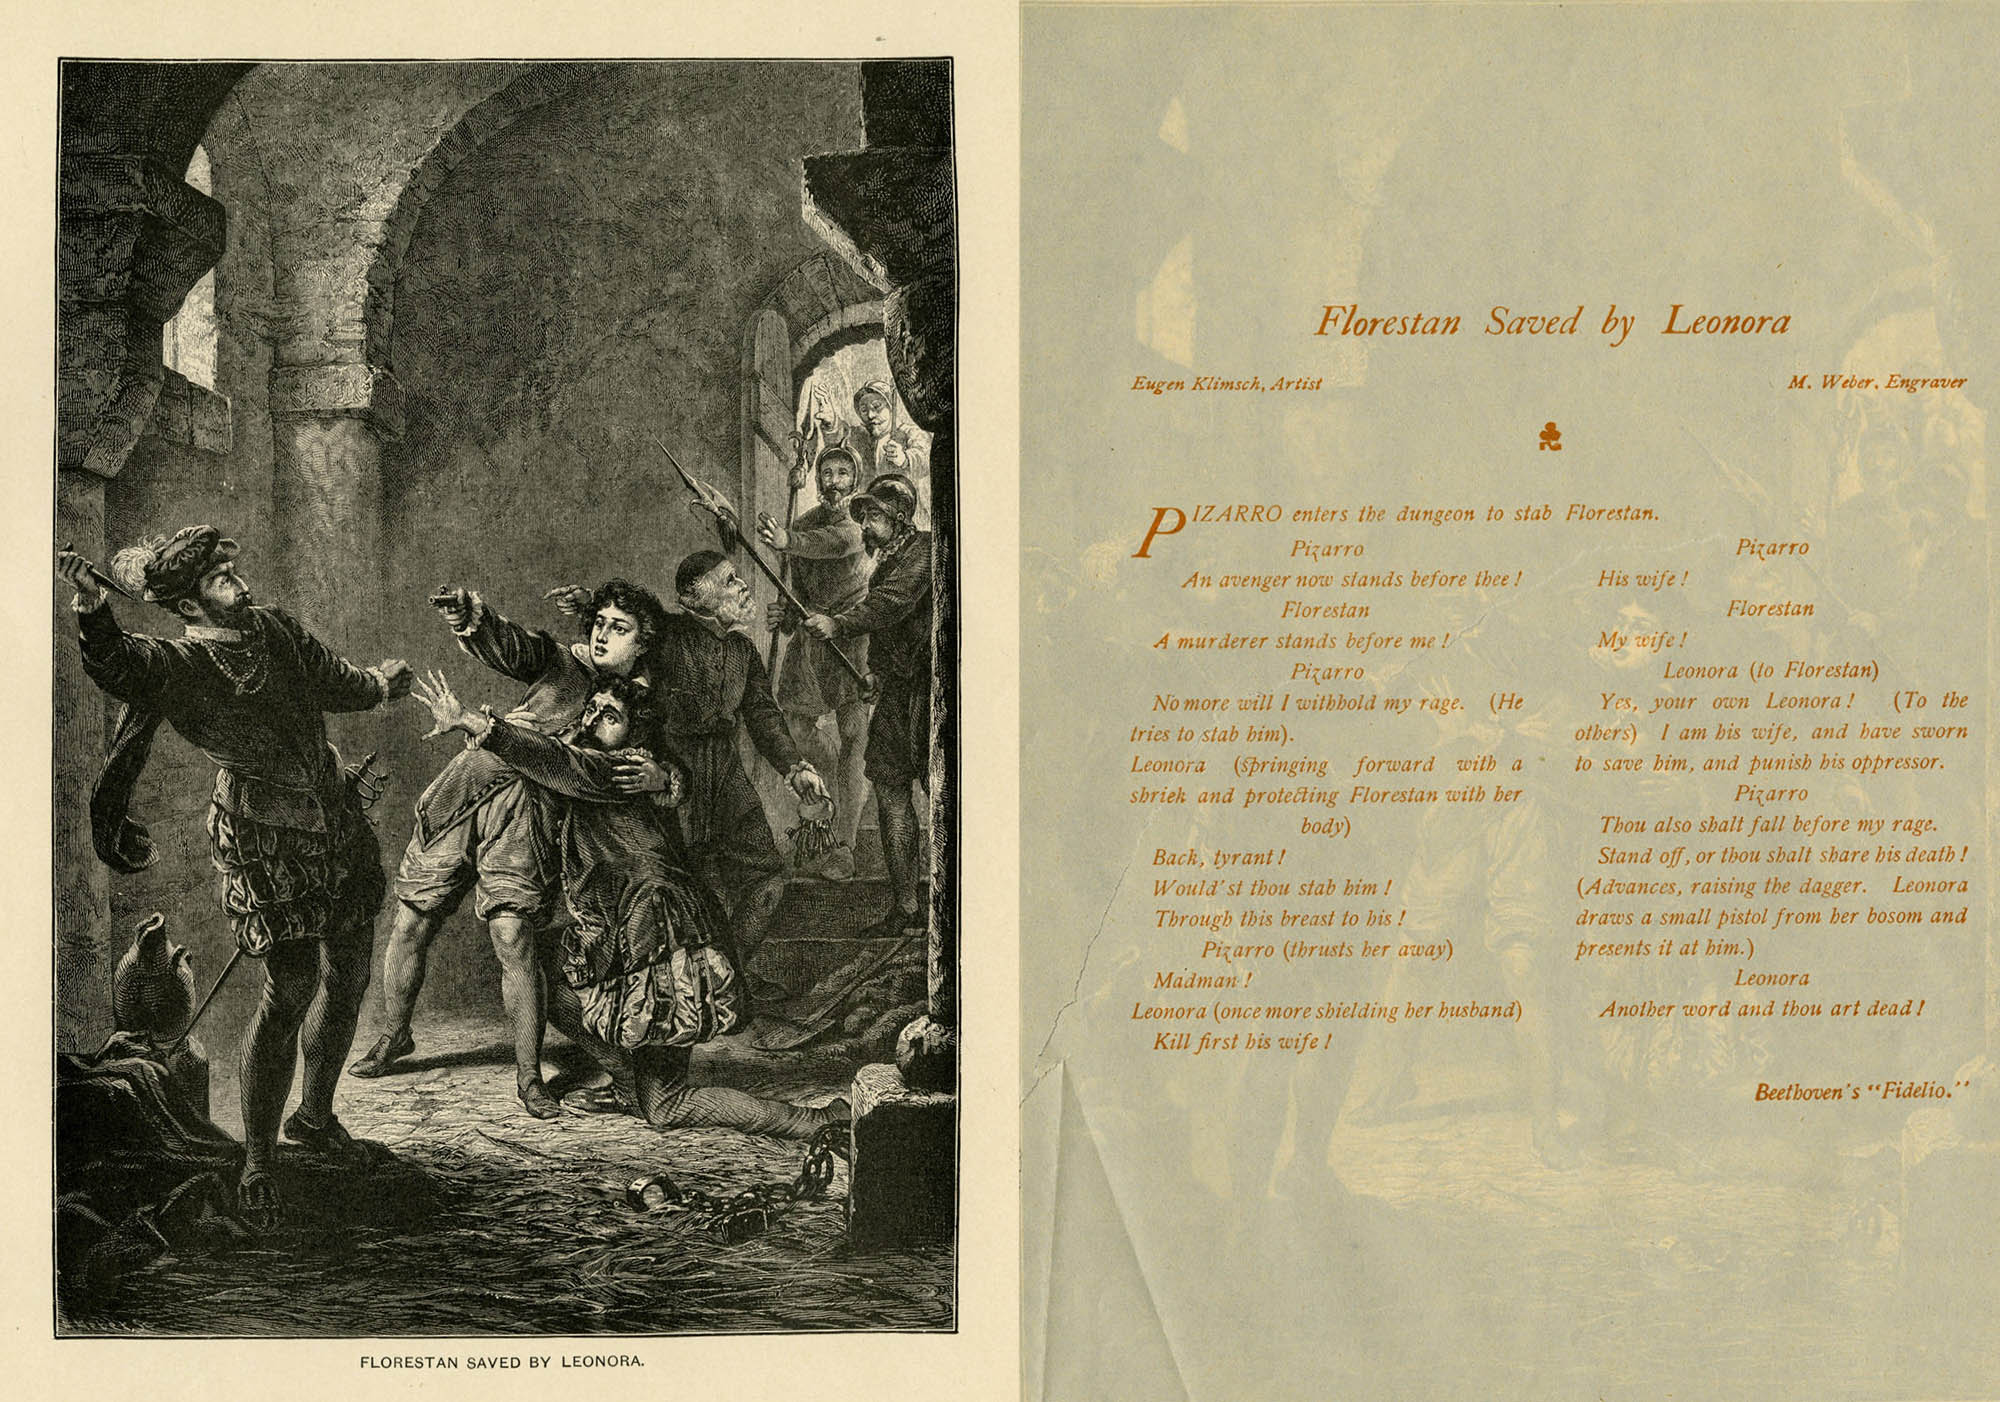 (left) Don Pizarro, with his knife drawn, is approaching Florestan. Fidelio (aka Leonora in disguise) is shielding Florestan, her pistol drawn and aimed at Don Pizarro. Soldiers are bursting through the door behind Florestan and Leonora. (right) The text to the scene in Fidelio in which Leonora reveals herself to be Florestan's wife.